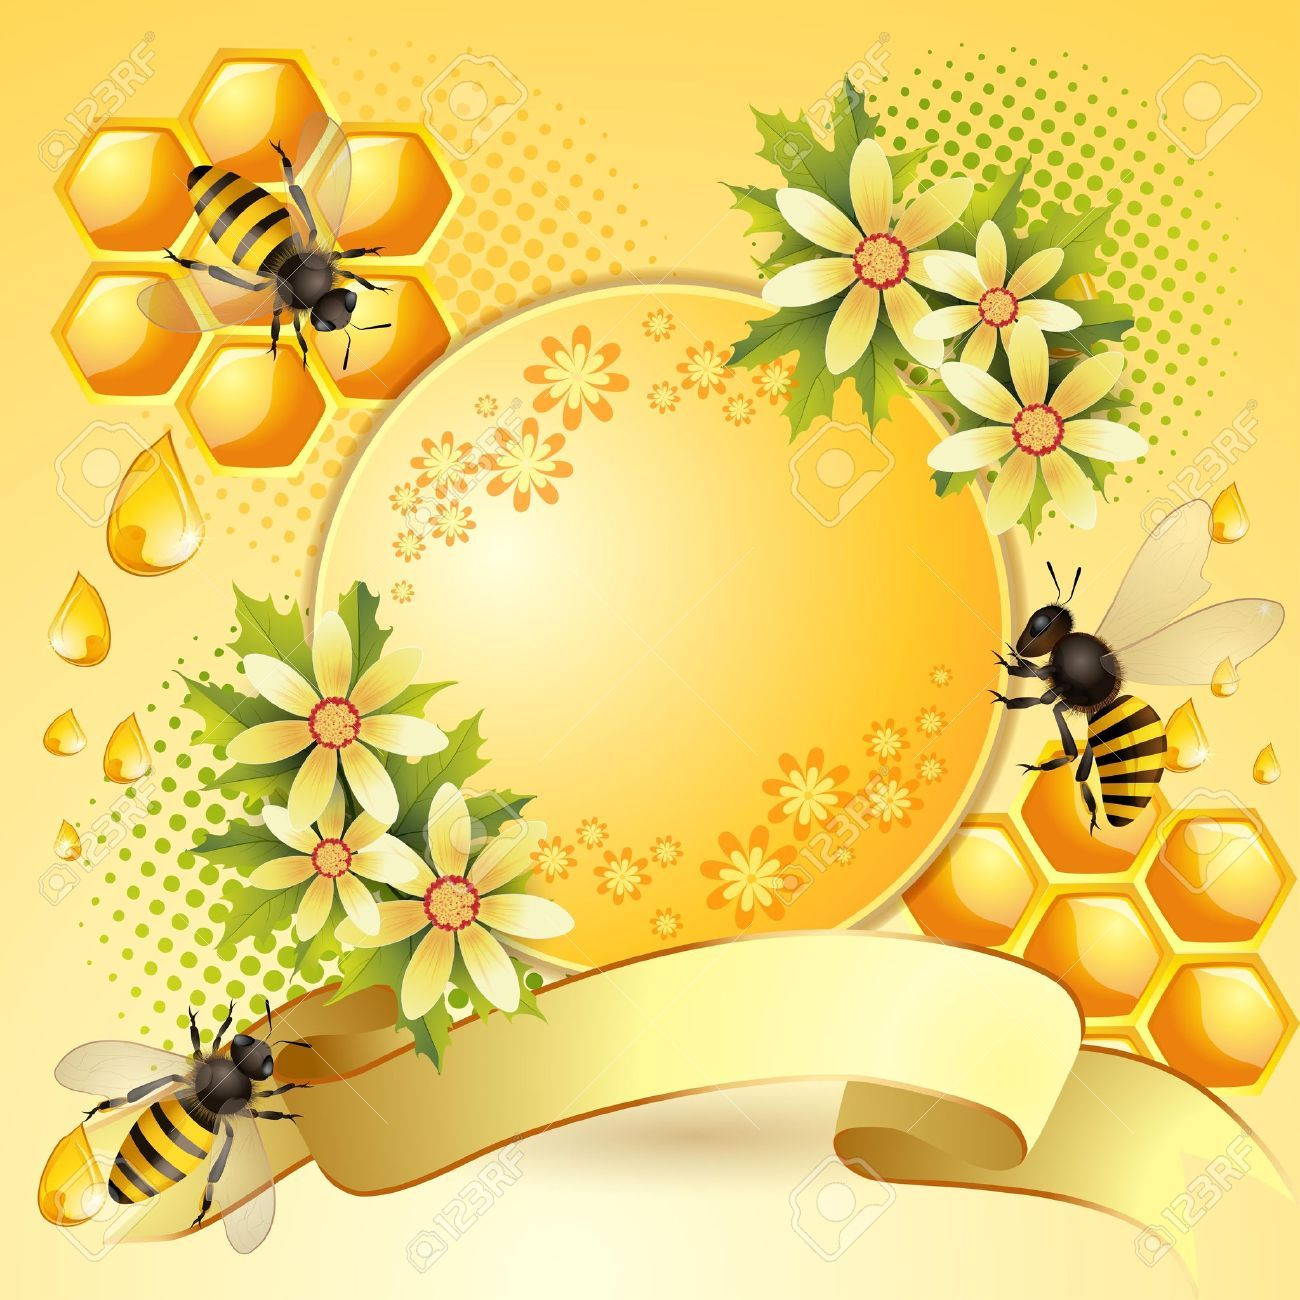 X . Honeycomb clipart bee pollination